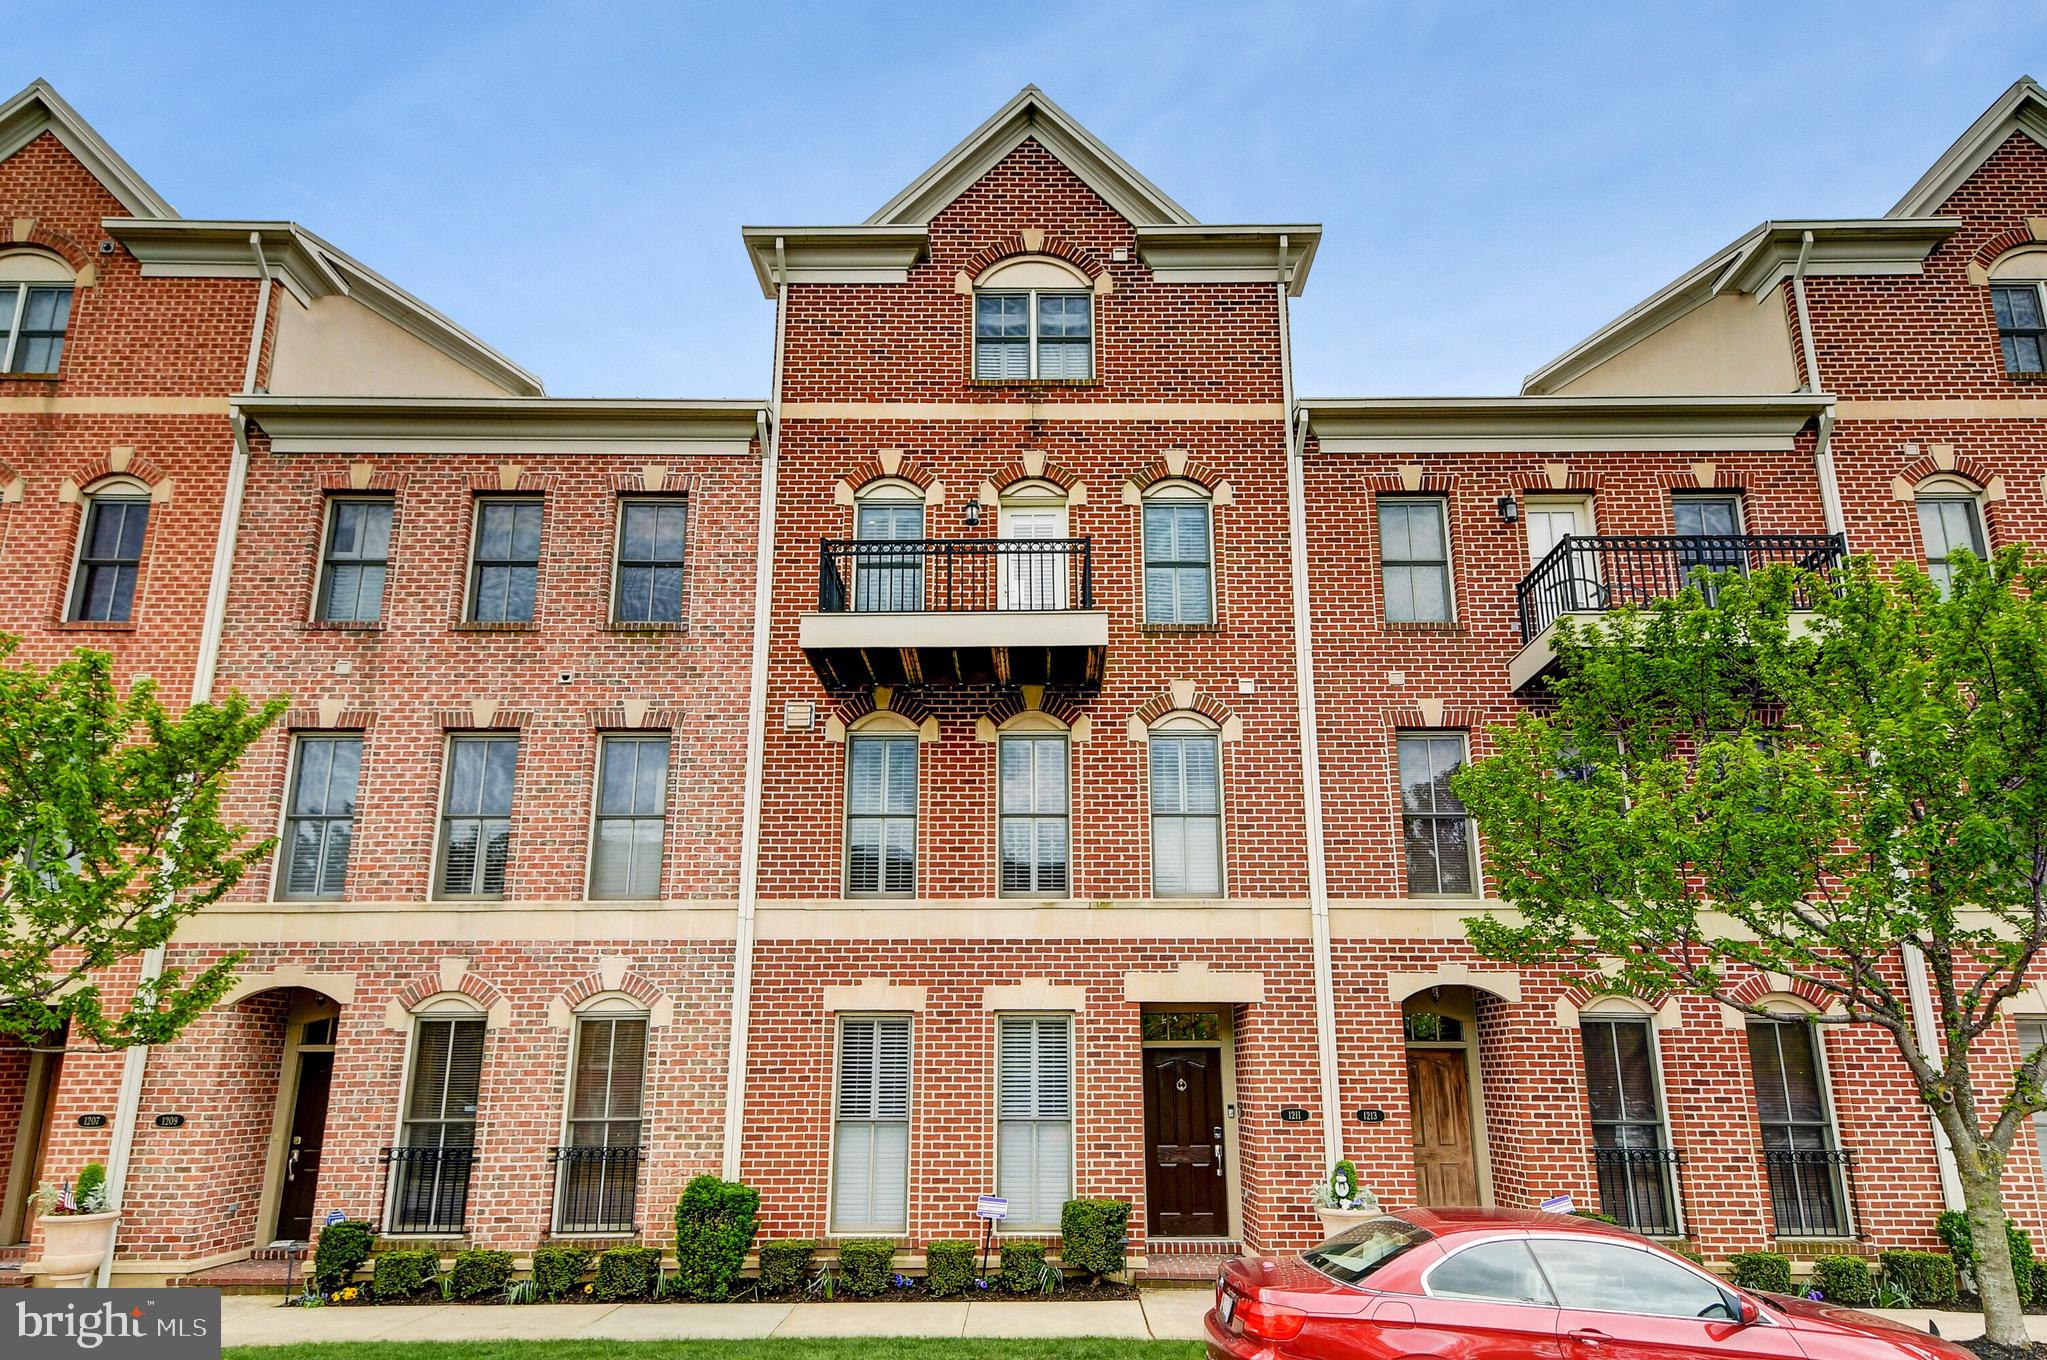 Magnificently remodeled and upgraded townhome in the Moorings, an upscale gated waterfront community in Canton, Baltimore Maryland. 3 BR, 3.5BA. Chef's kitchen with Wolf / Sub Zero appliances. Open concept floor plan on the main level. 2 fireplaces- water view from balconies. Custom mill work and appointments throughout. Abundant parking   2 garage, two parking pad plus street parking. Located just steps from groceries, shopping, restaurants and entertainment . Easy access in and out of the city.